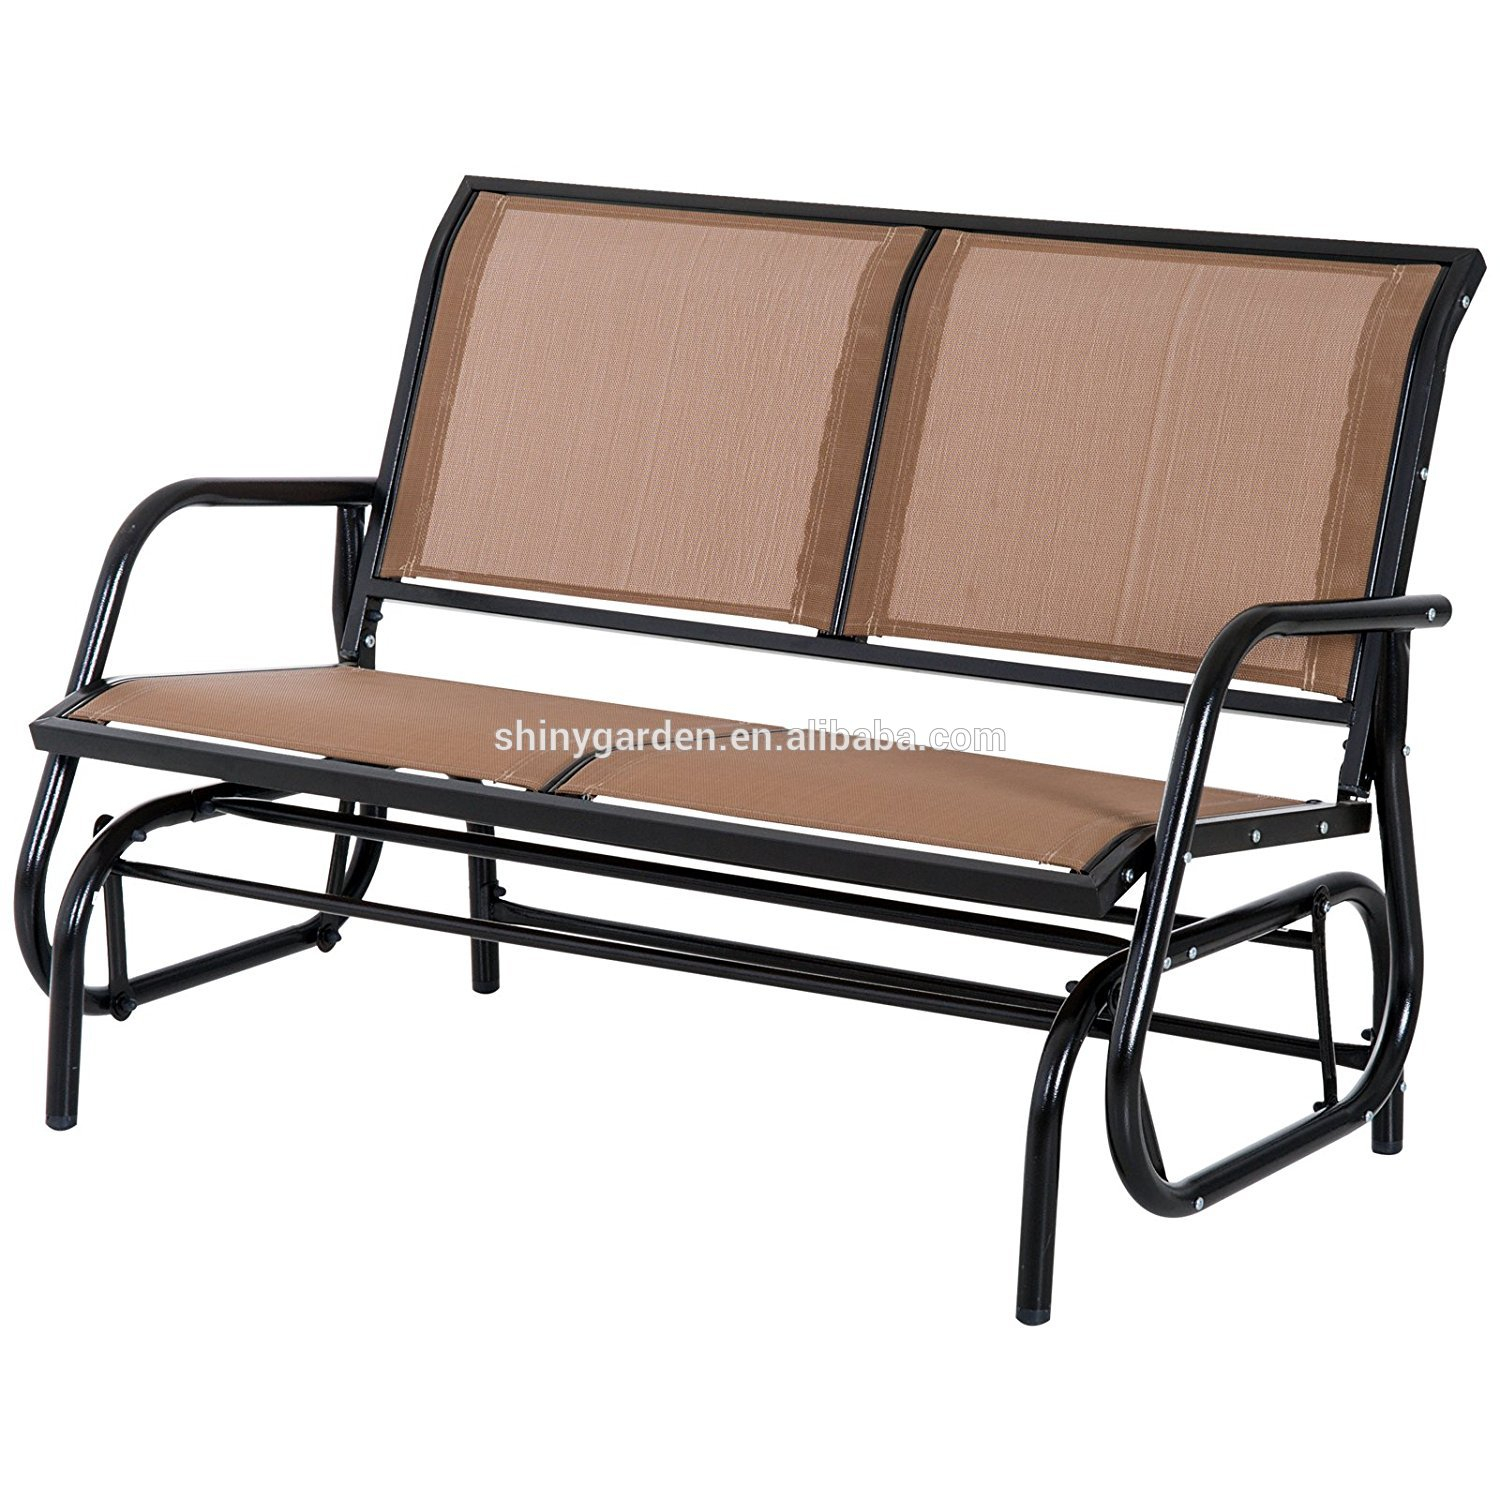 Outdoor Swing Glider Chair,patio Bench For 2 Person,garden Rocking Seating – Buy Swing Glider Chair Product On Alibaba Inside Steel Patio Swing Glider Benches (View 16 of 25)